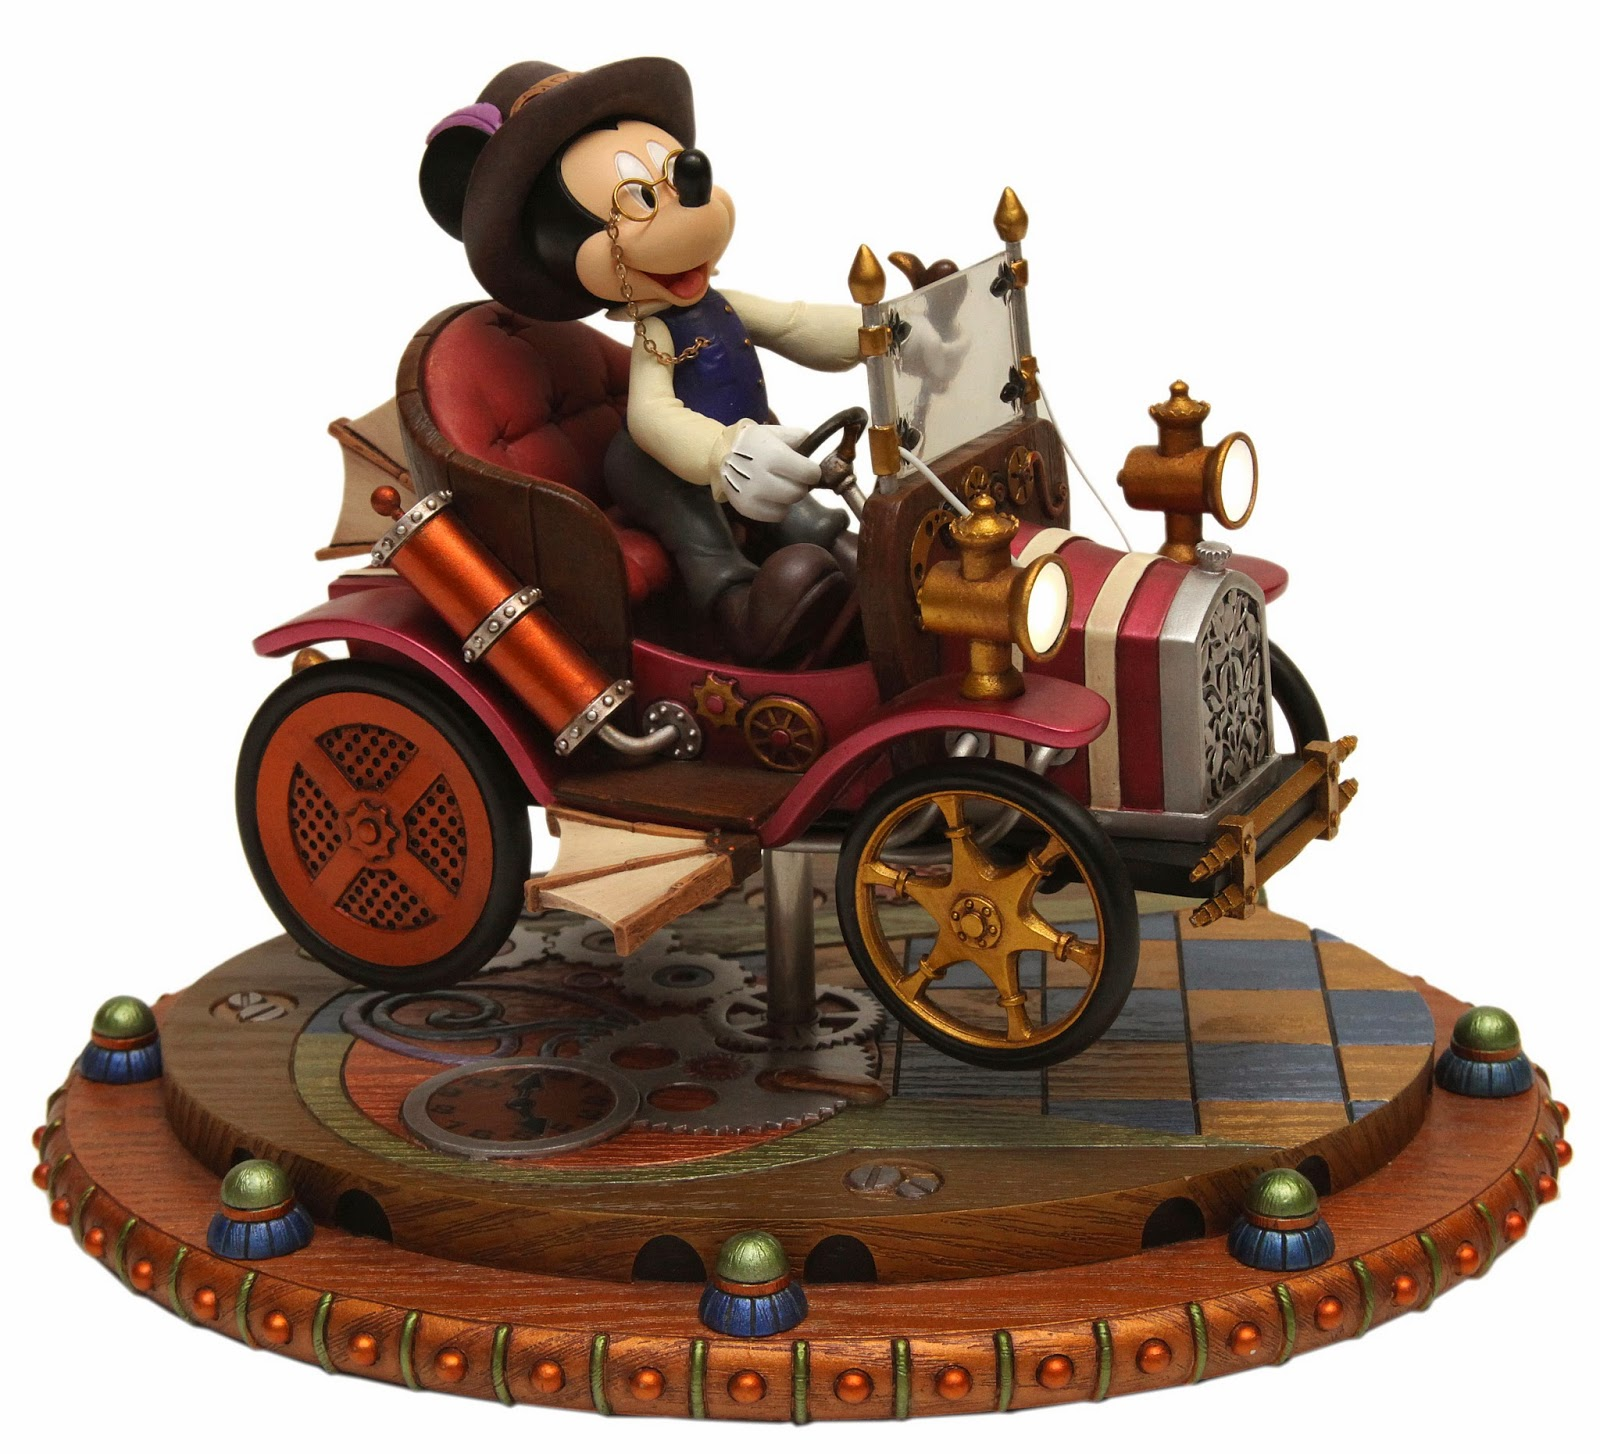 Mickey Mouse Mechanical Kingdom car roadster steampunk figure figurine sculpture gears walt disney world wdw disneyland